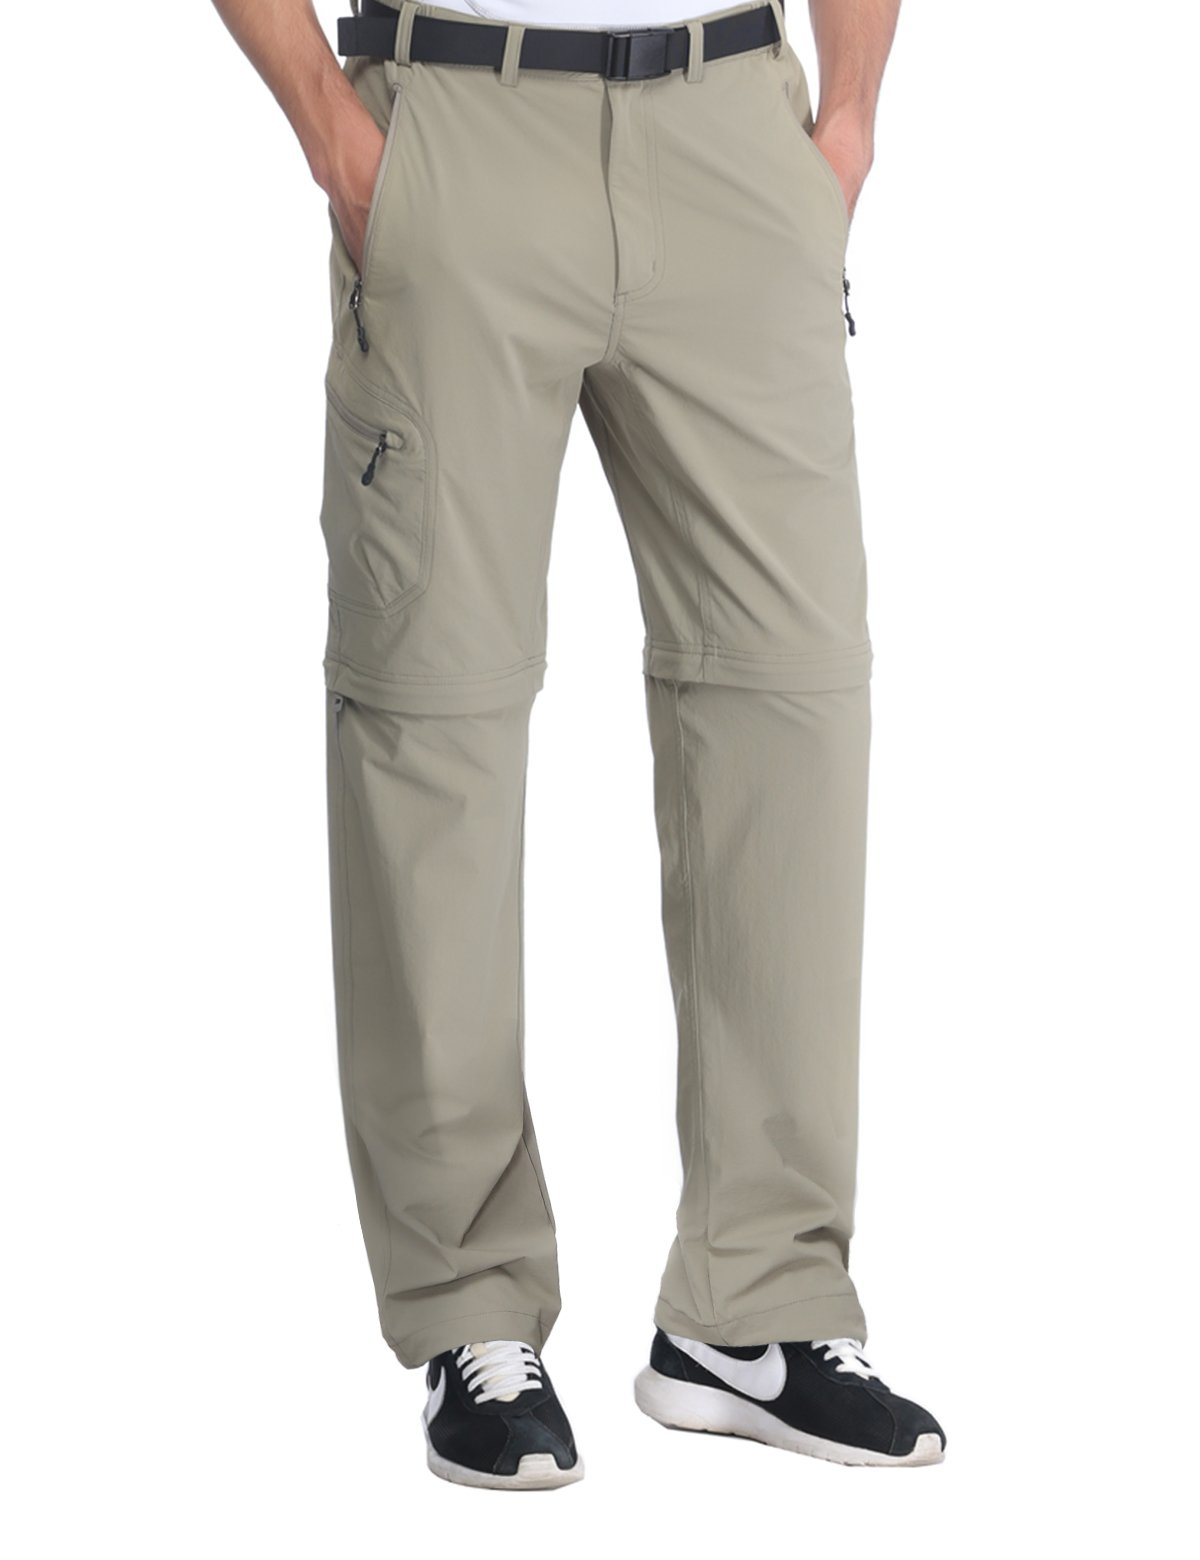 MIERSPORTS Men's Outdoor Cargo Pants Quick Dry Convertible Pants for Travel Hiking Climbing, Water Resistant, 5 Pockets, Rock Gray, L